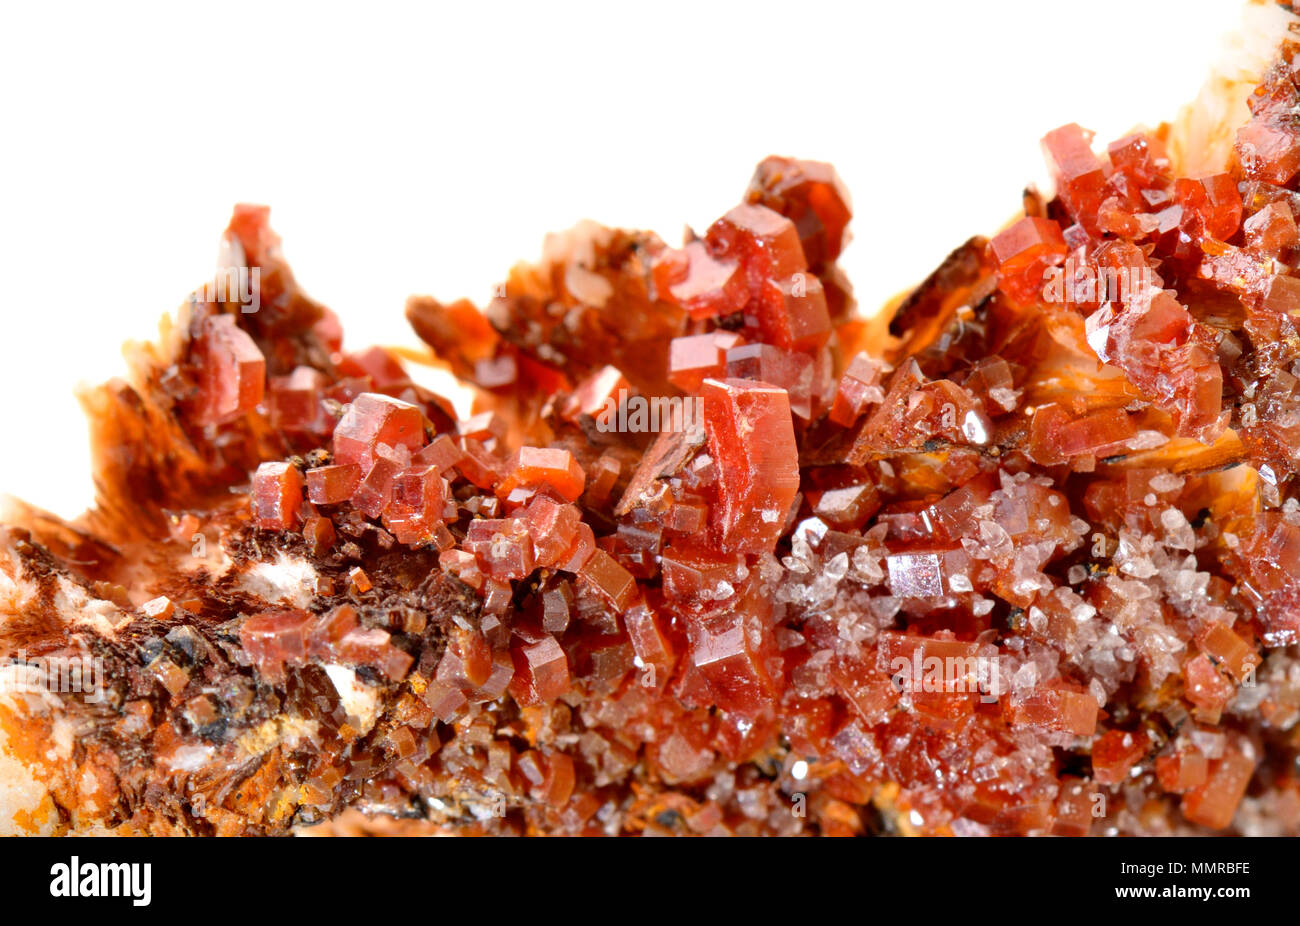 Red Vanadinite crystals (vanadate and chloride of lead) - Stock Image